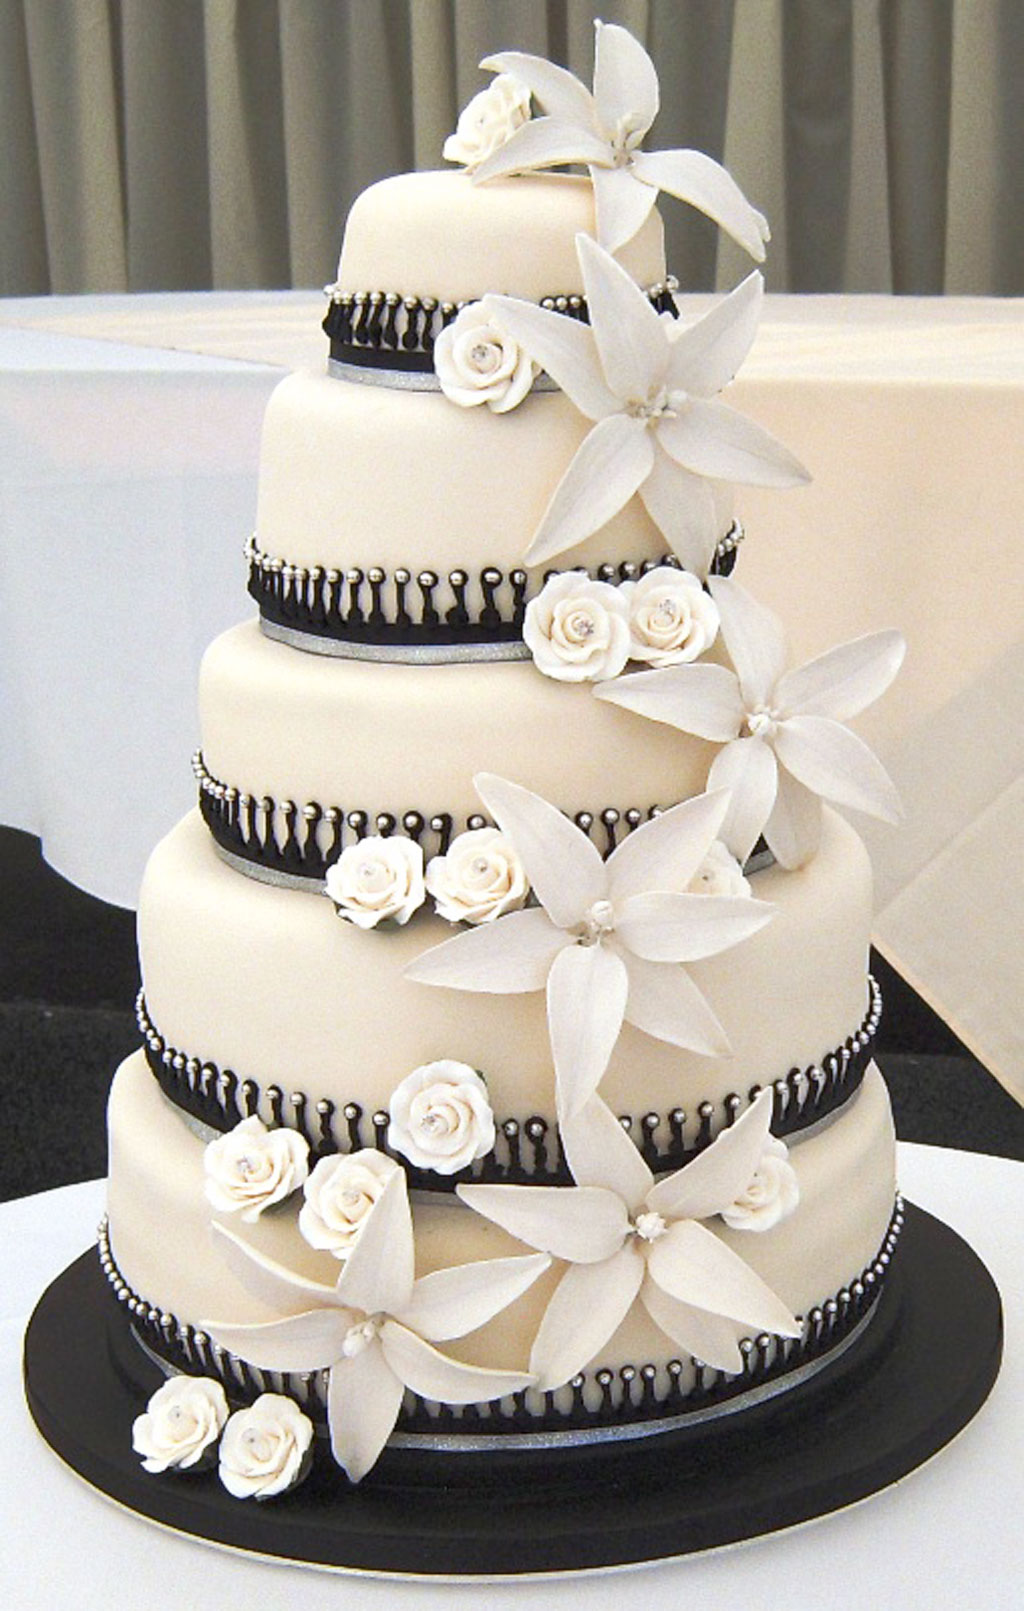 black wedding cake ideas black white wedding cake designs wedding cake cake ideas 11879